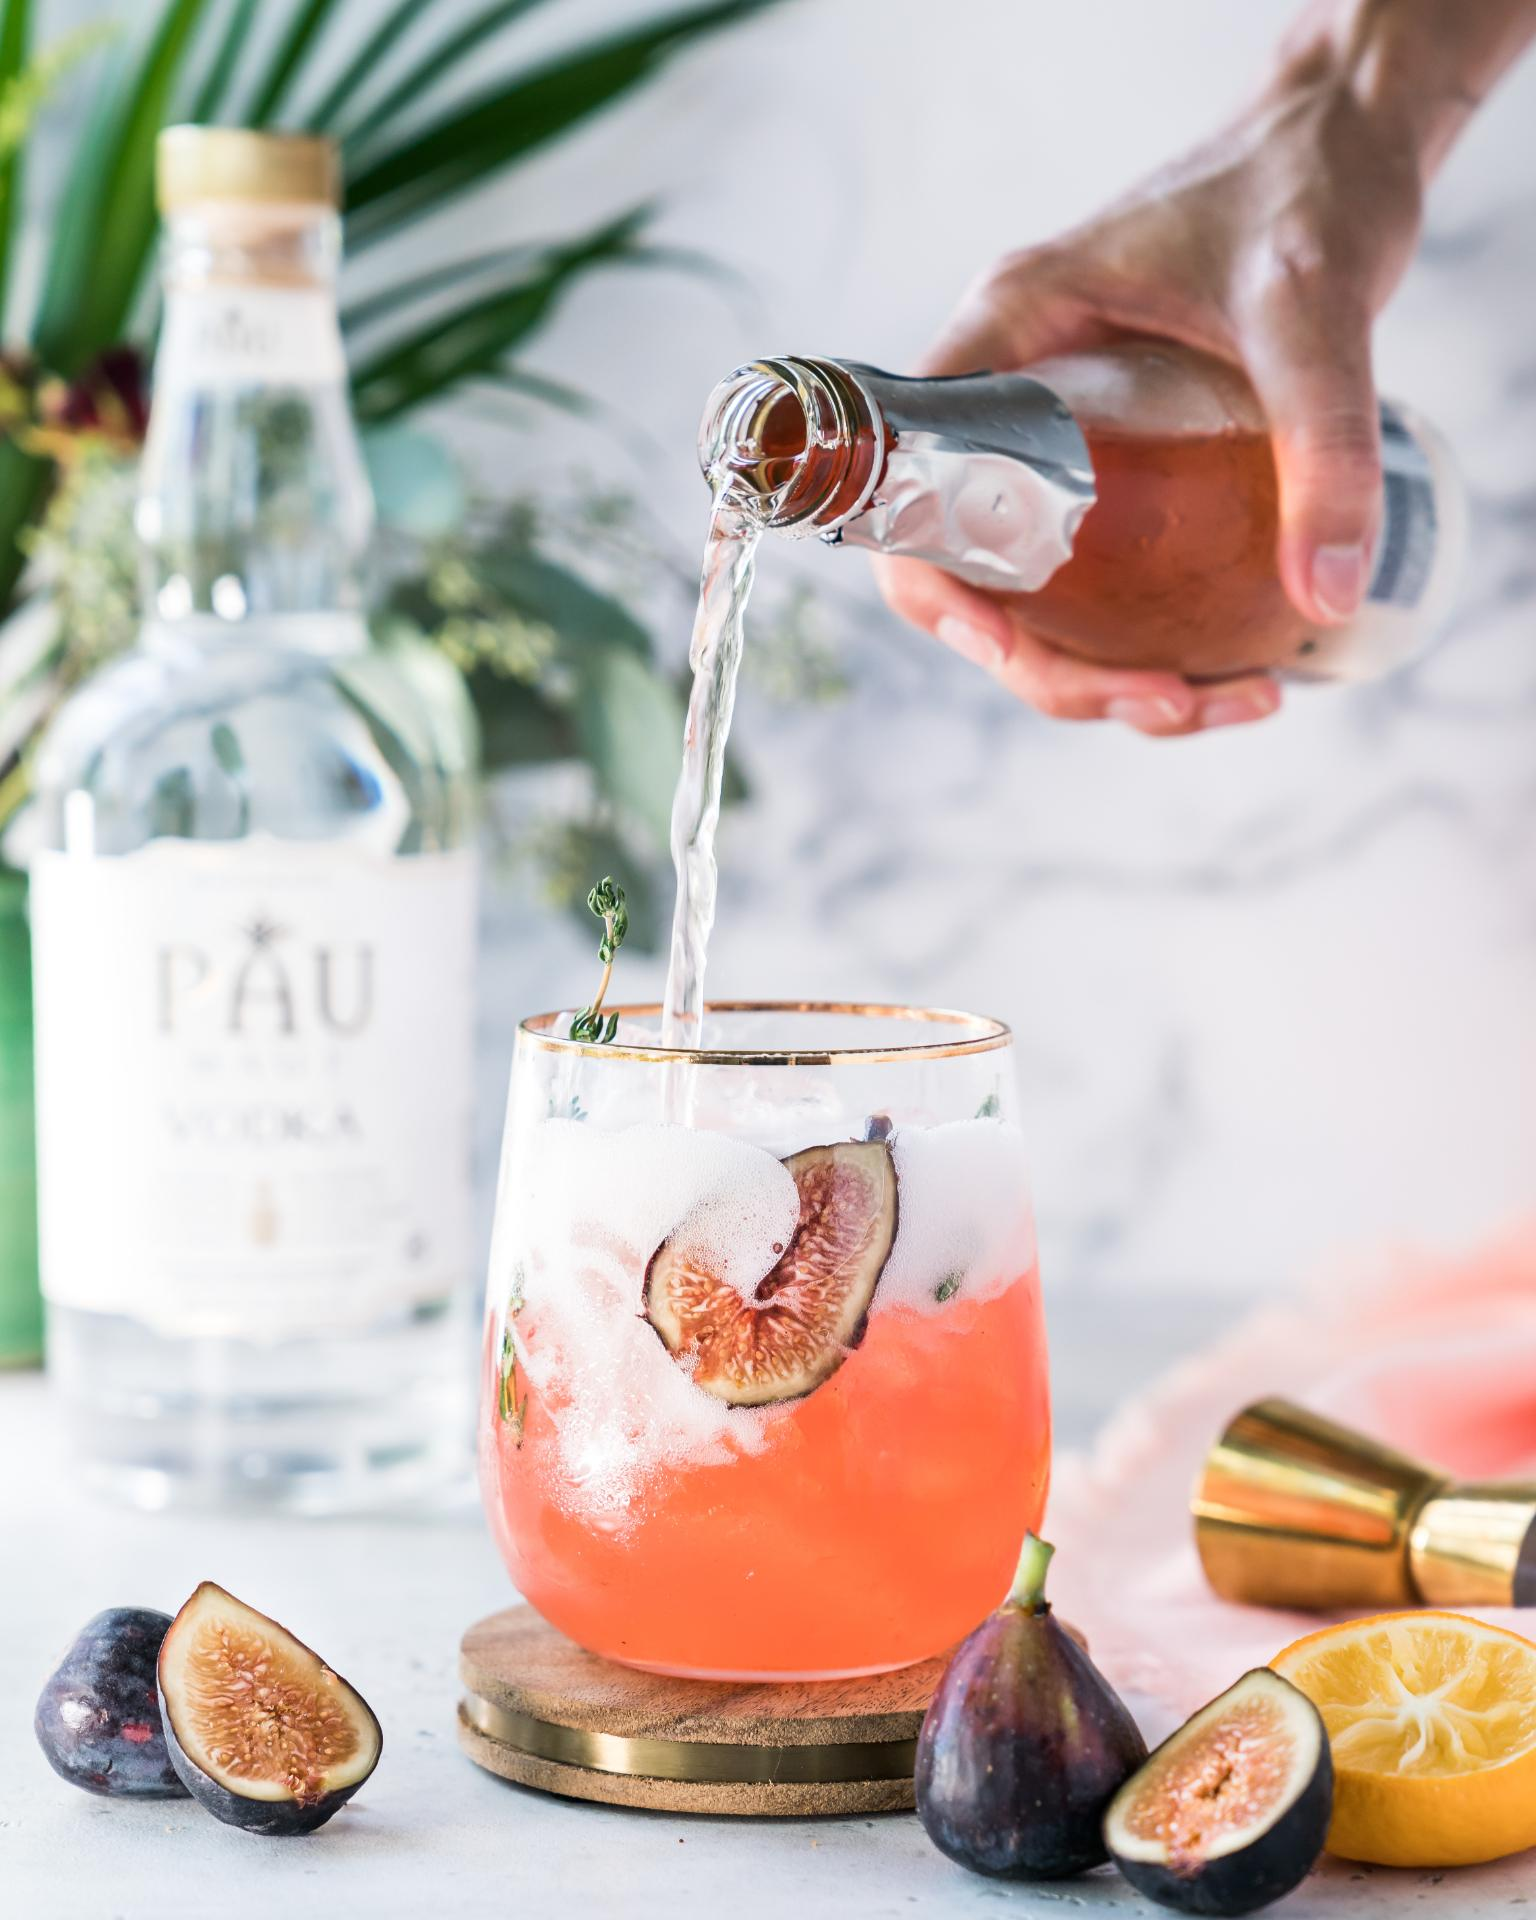 pau maui cocktail